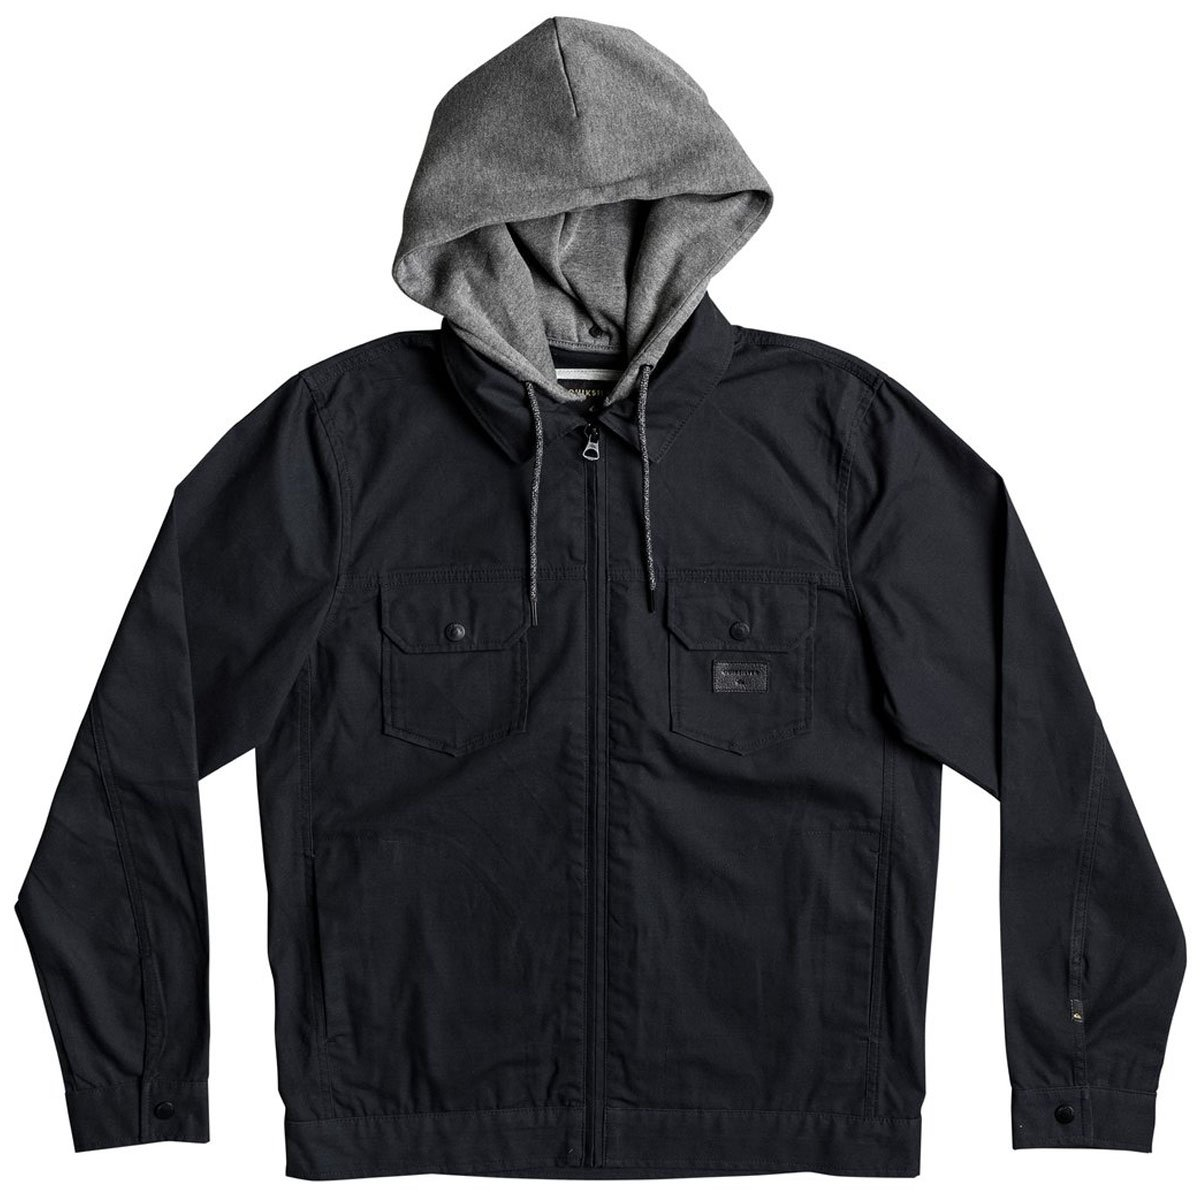 Quiksilver Men's Tionaga Bomber Insulated Jacket, Black, L by Quiksilver